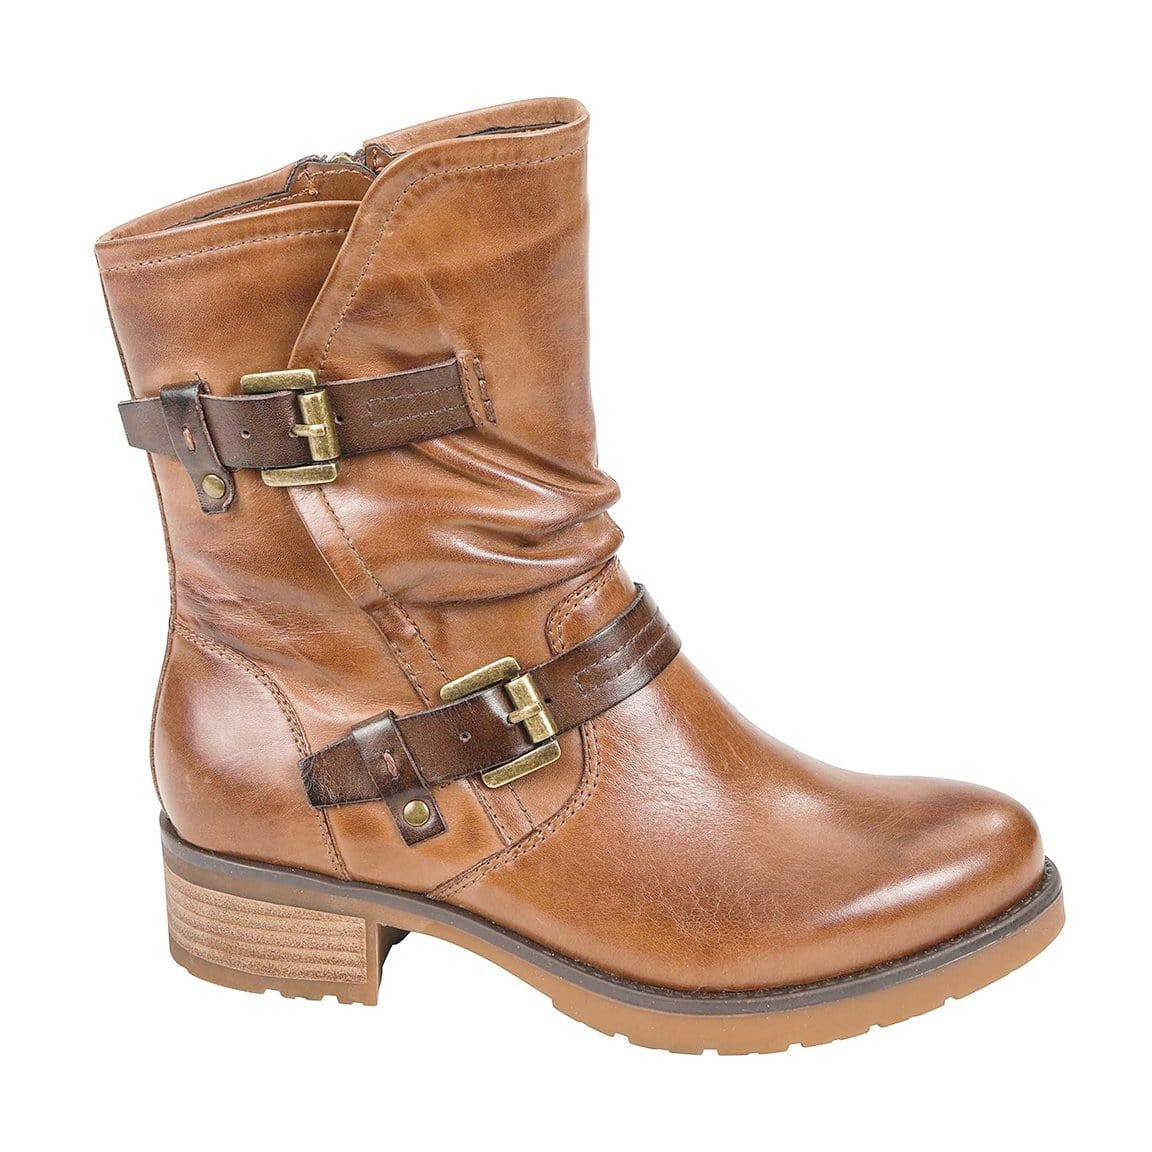 Earth Brand Talus Boot - Womens Talus Leather Moto Boot - Simons Shoes